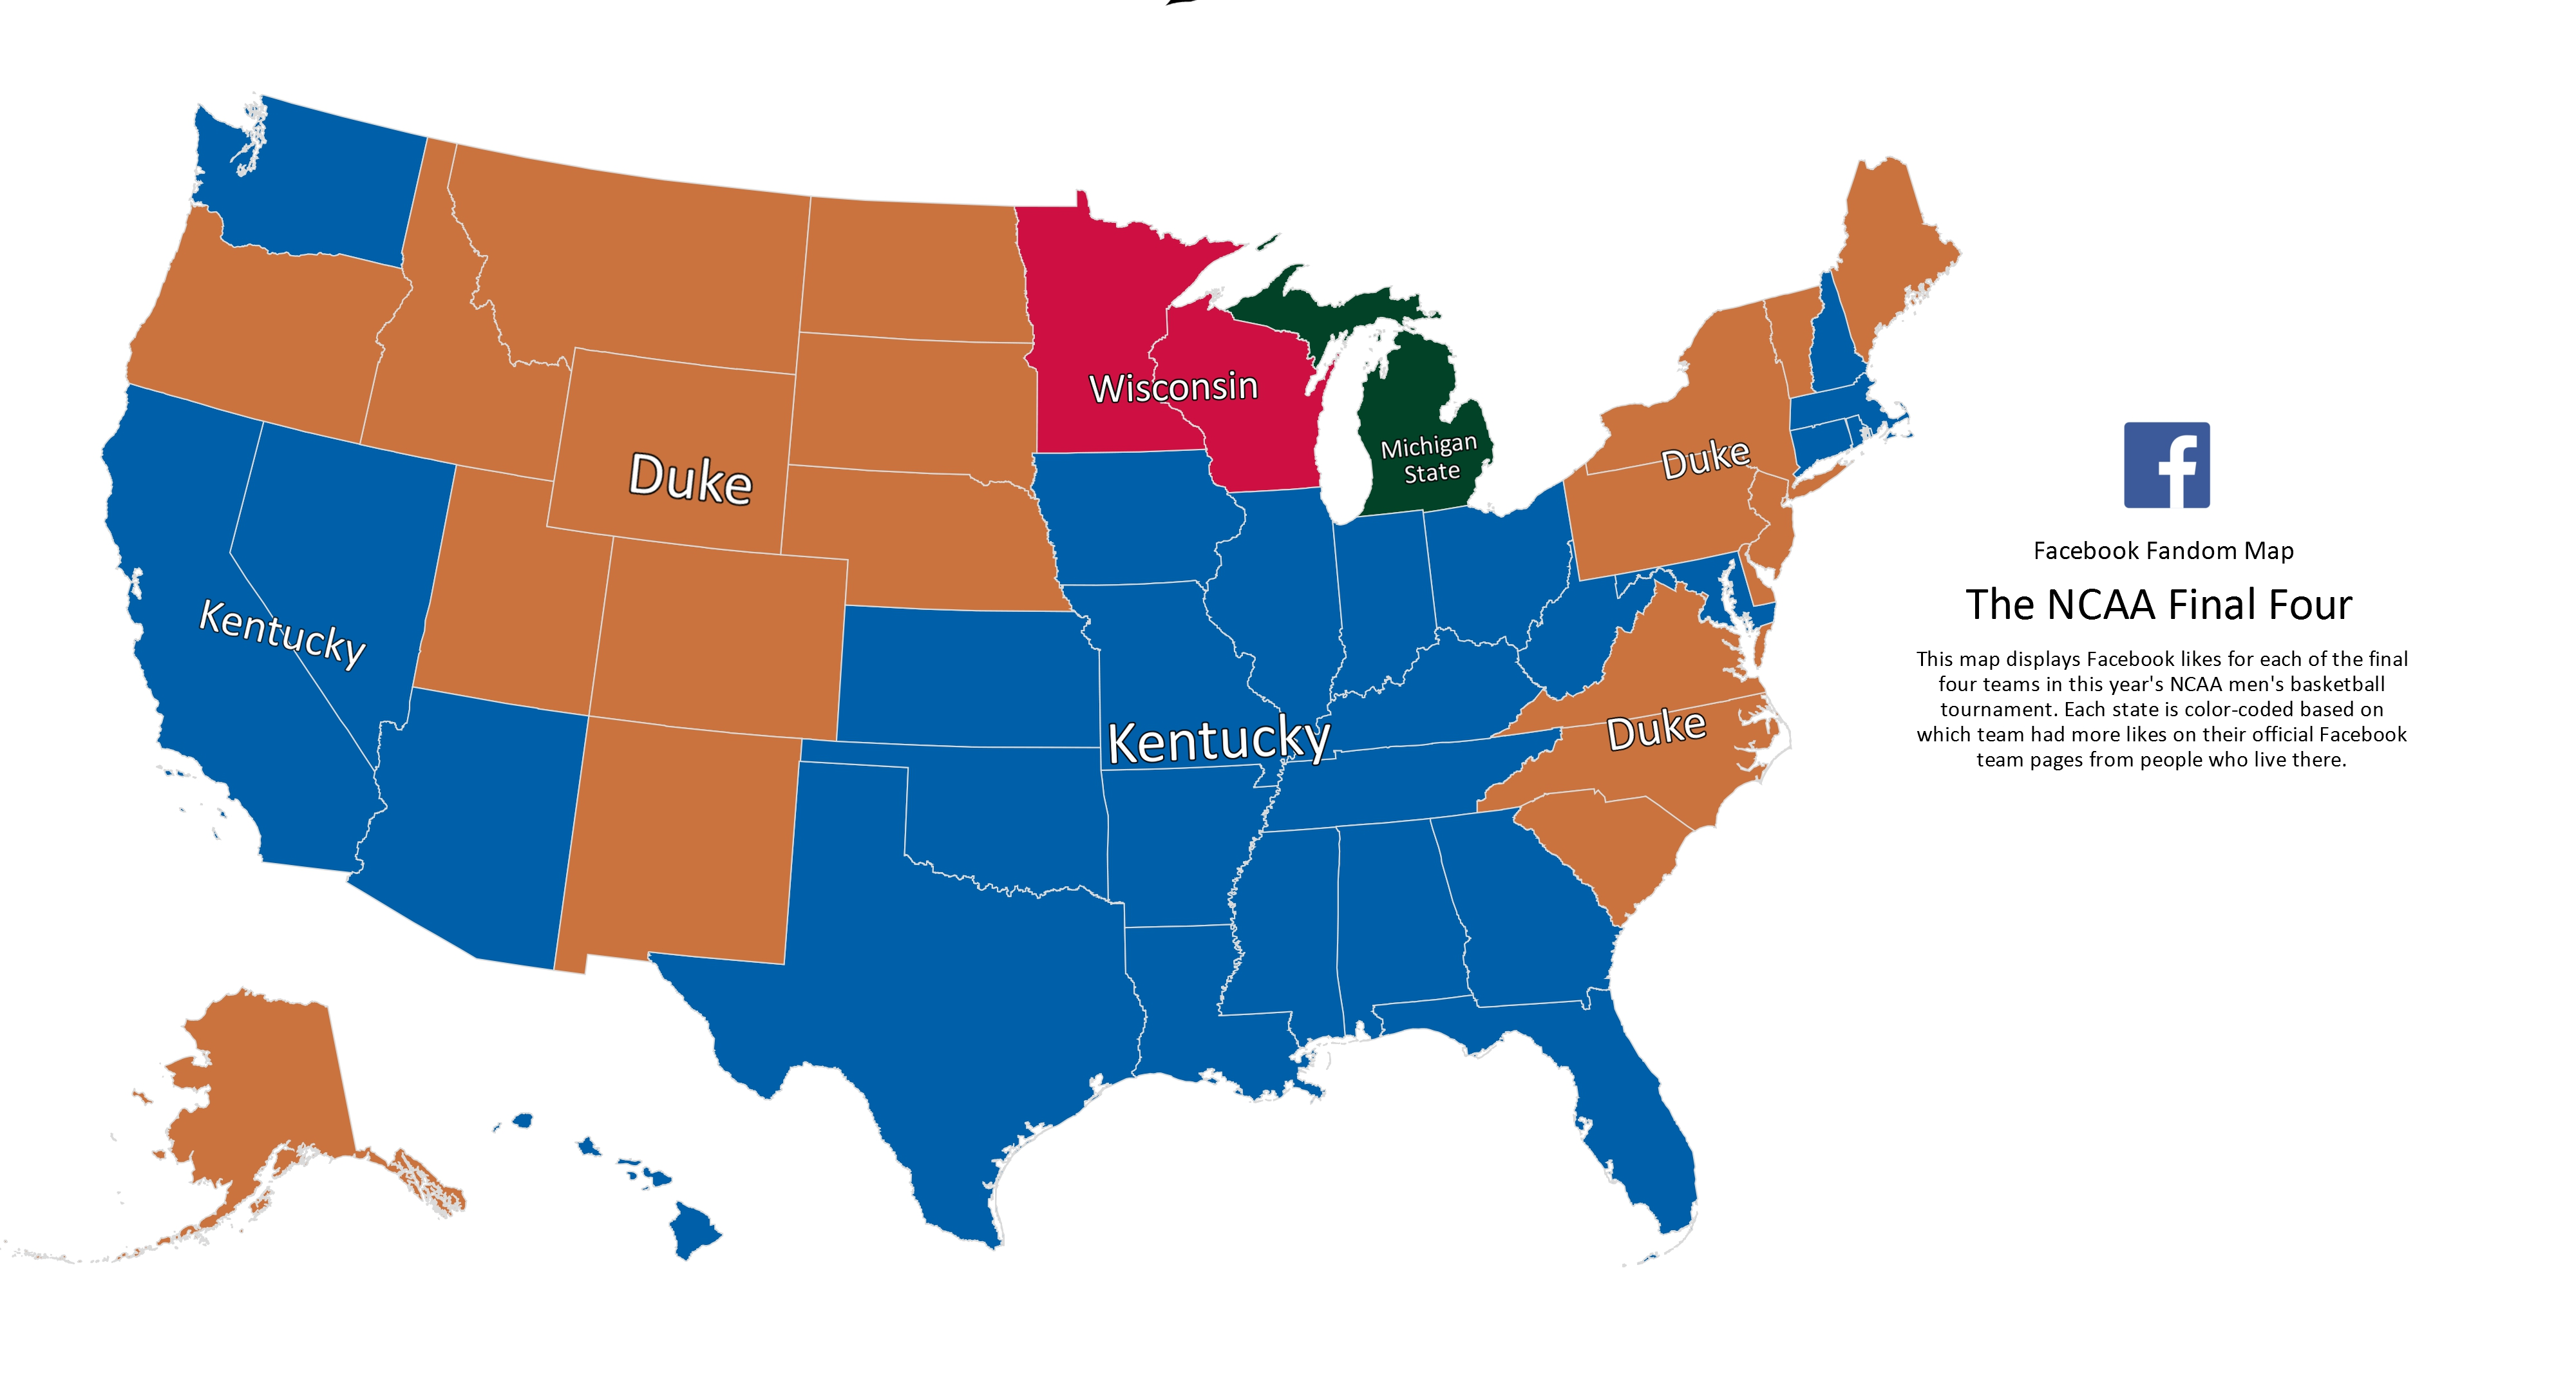 These Maps Show Which Final 4 Teams Each State Is Talking ...